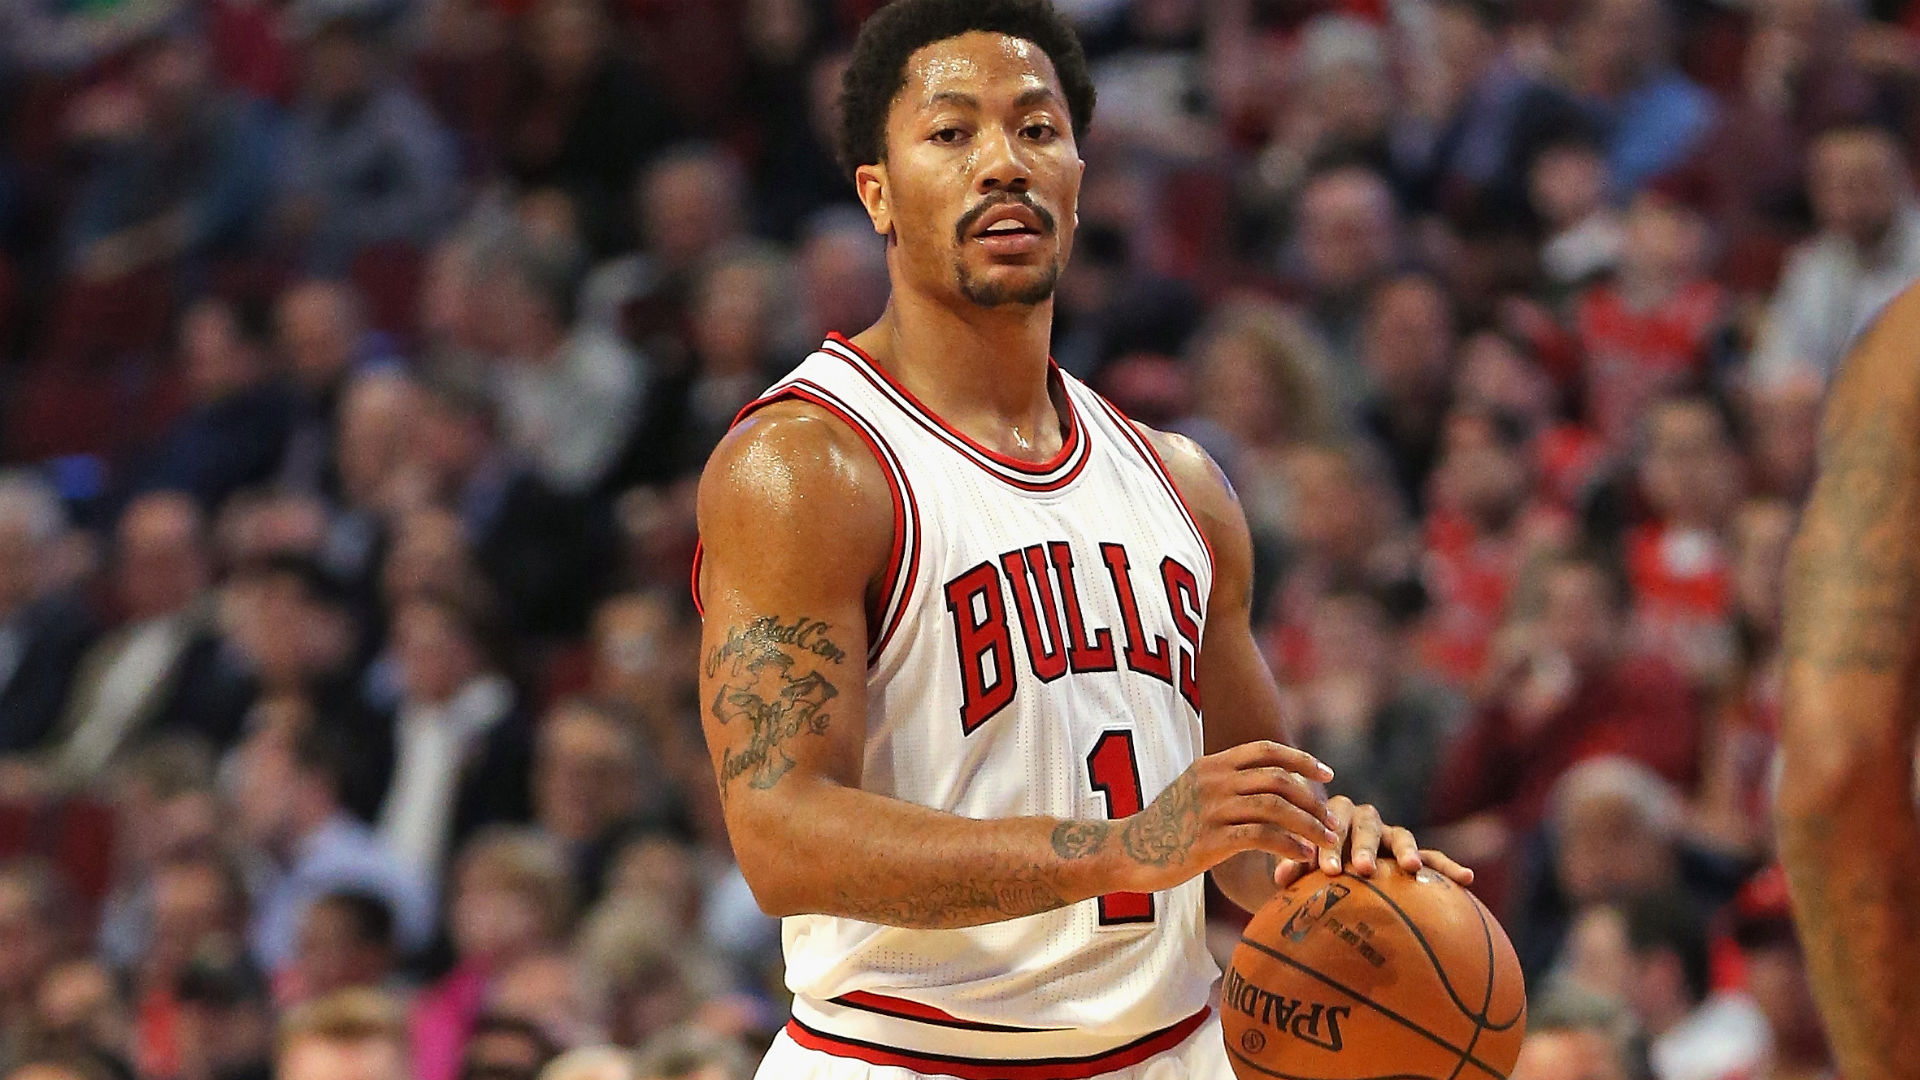 Derrick Rose earns MVP chants from Bulls fans